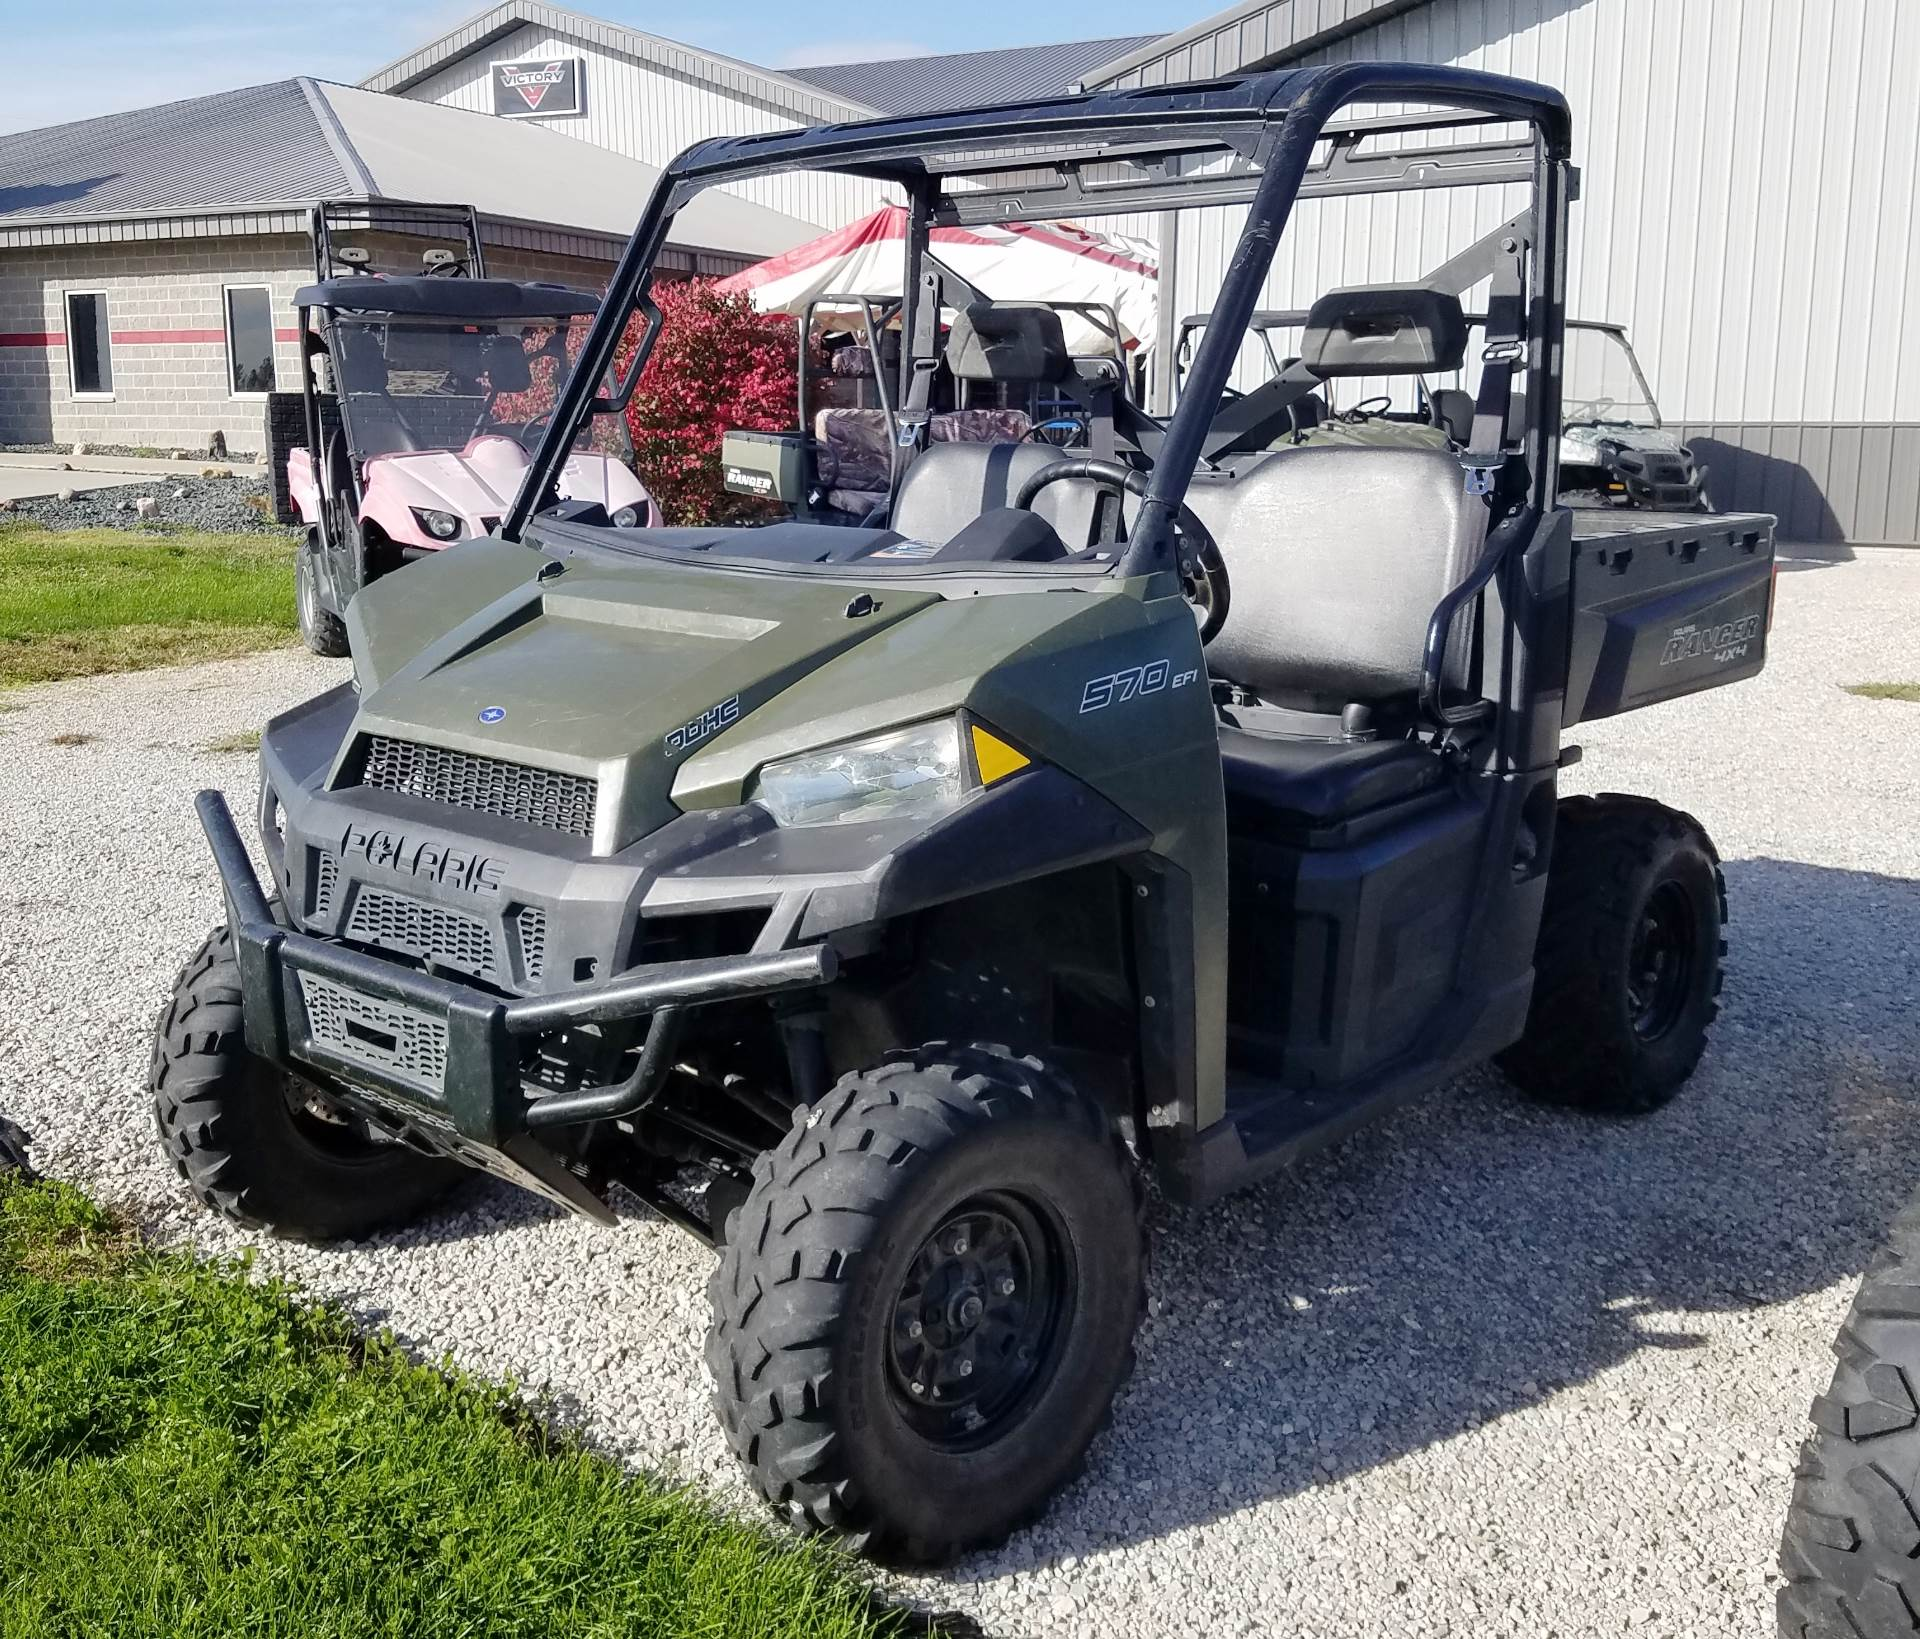 2015 Polaris Ranger >> Used 2015 Polaris Ranger 570 Full Size Utility Vehicles In Ottumwa